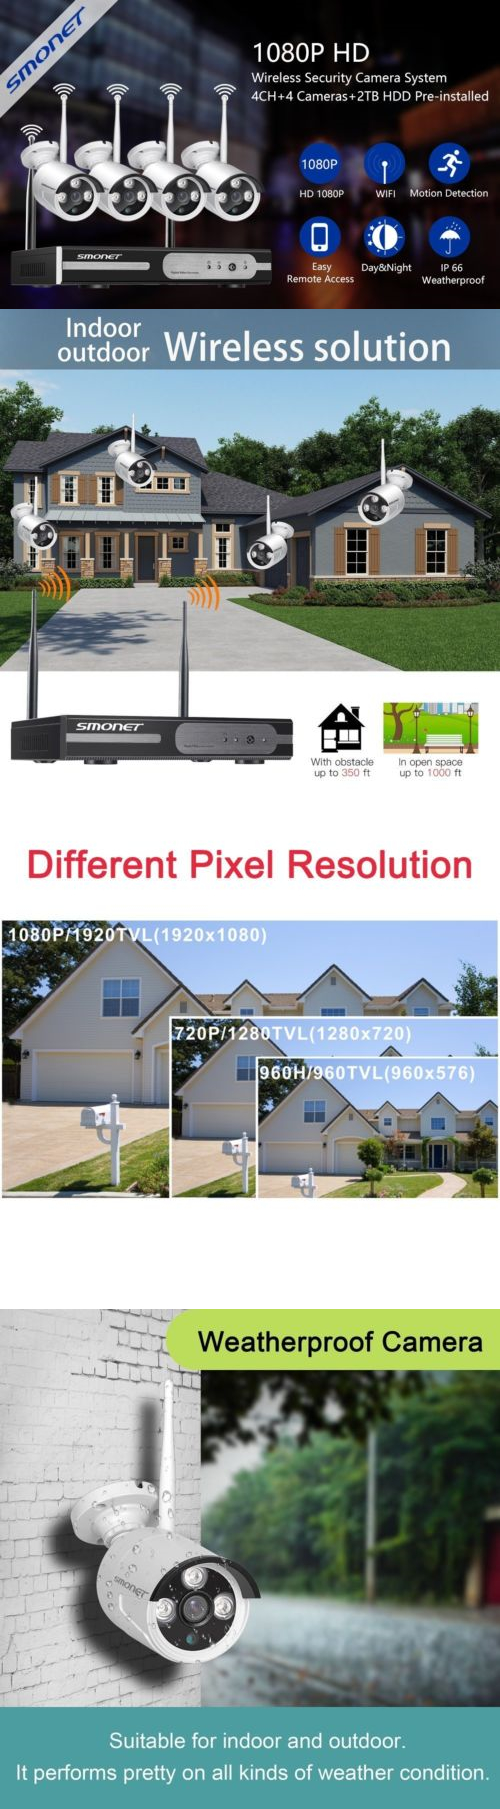 small resolution of security cameras outdoor wireless clear picture 4 1080p security bullet ip camera system 2tb nvr